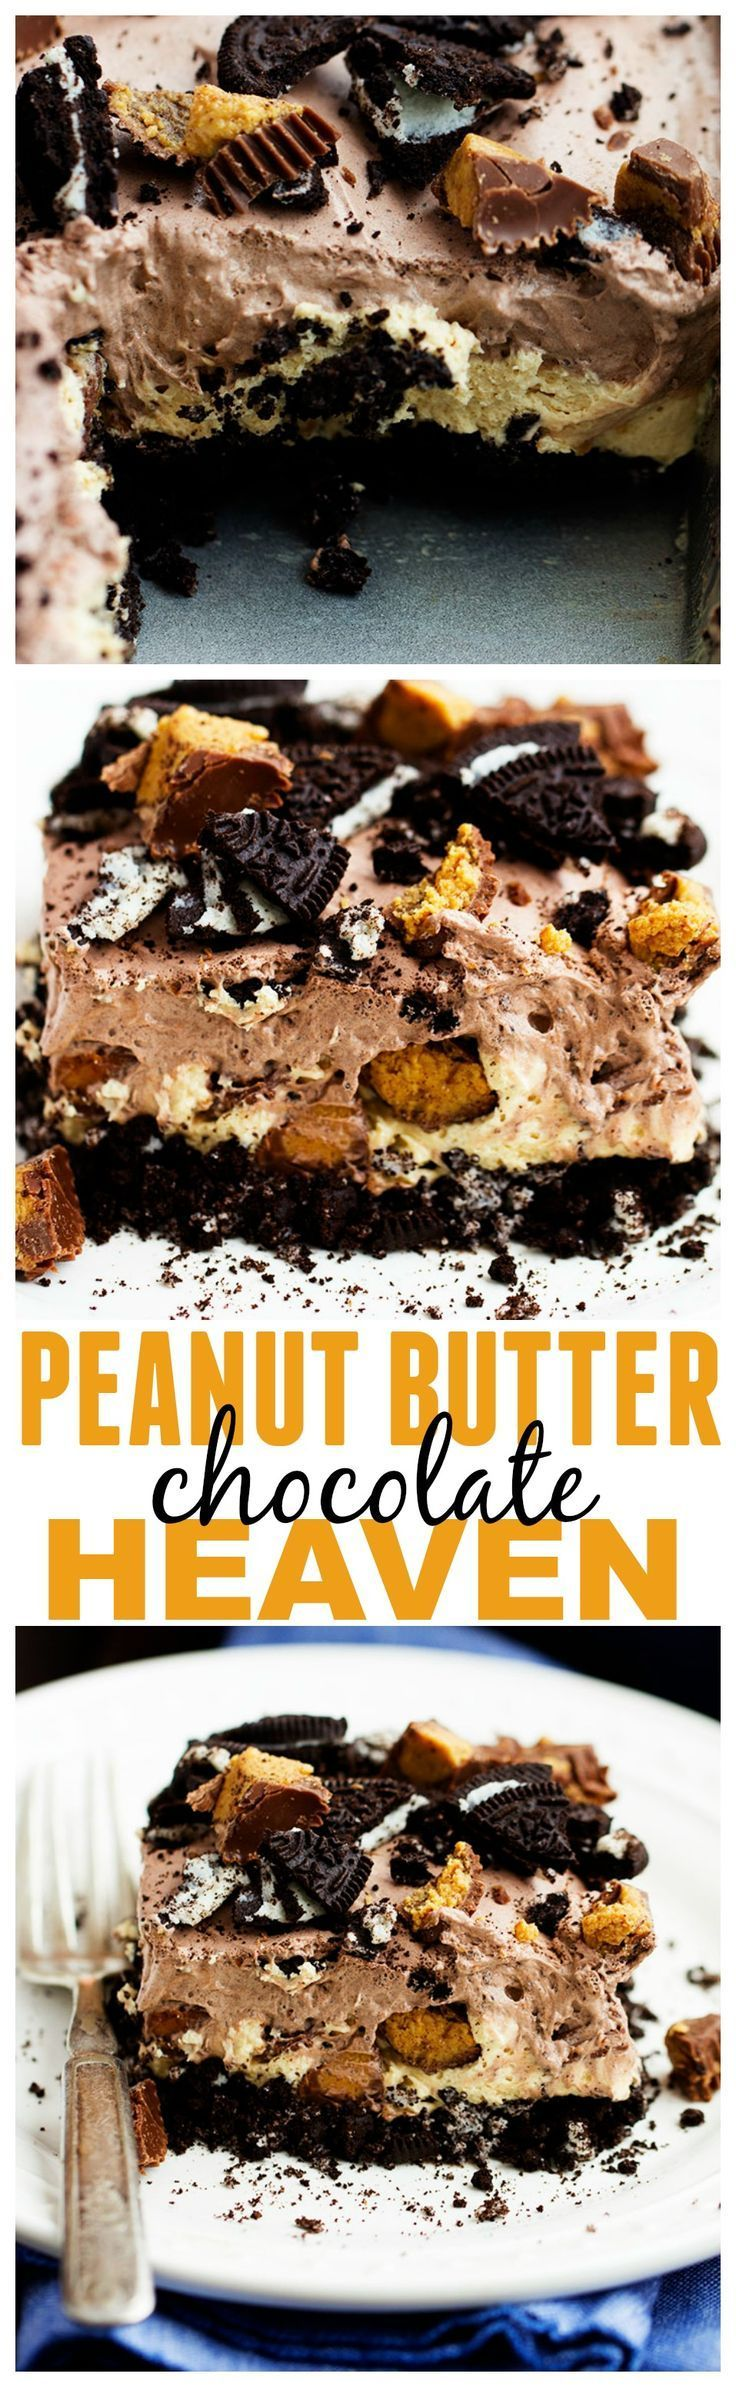 This Peanut Butter Chocolate Heaven is one of the BEST desserts you will make…